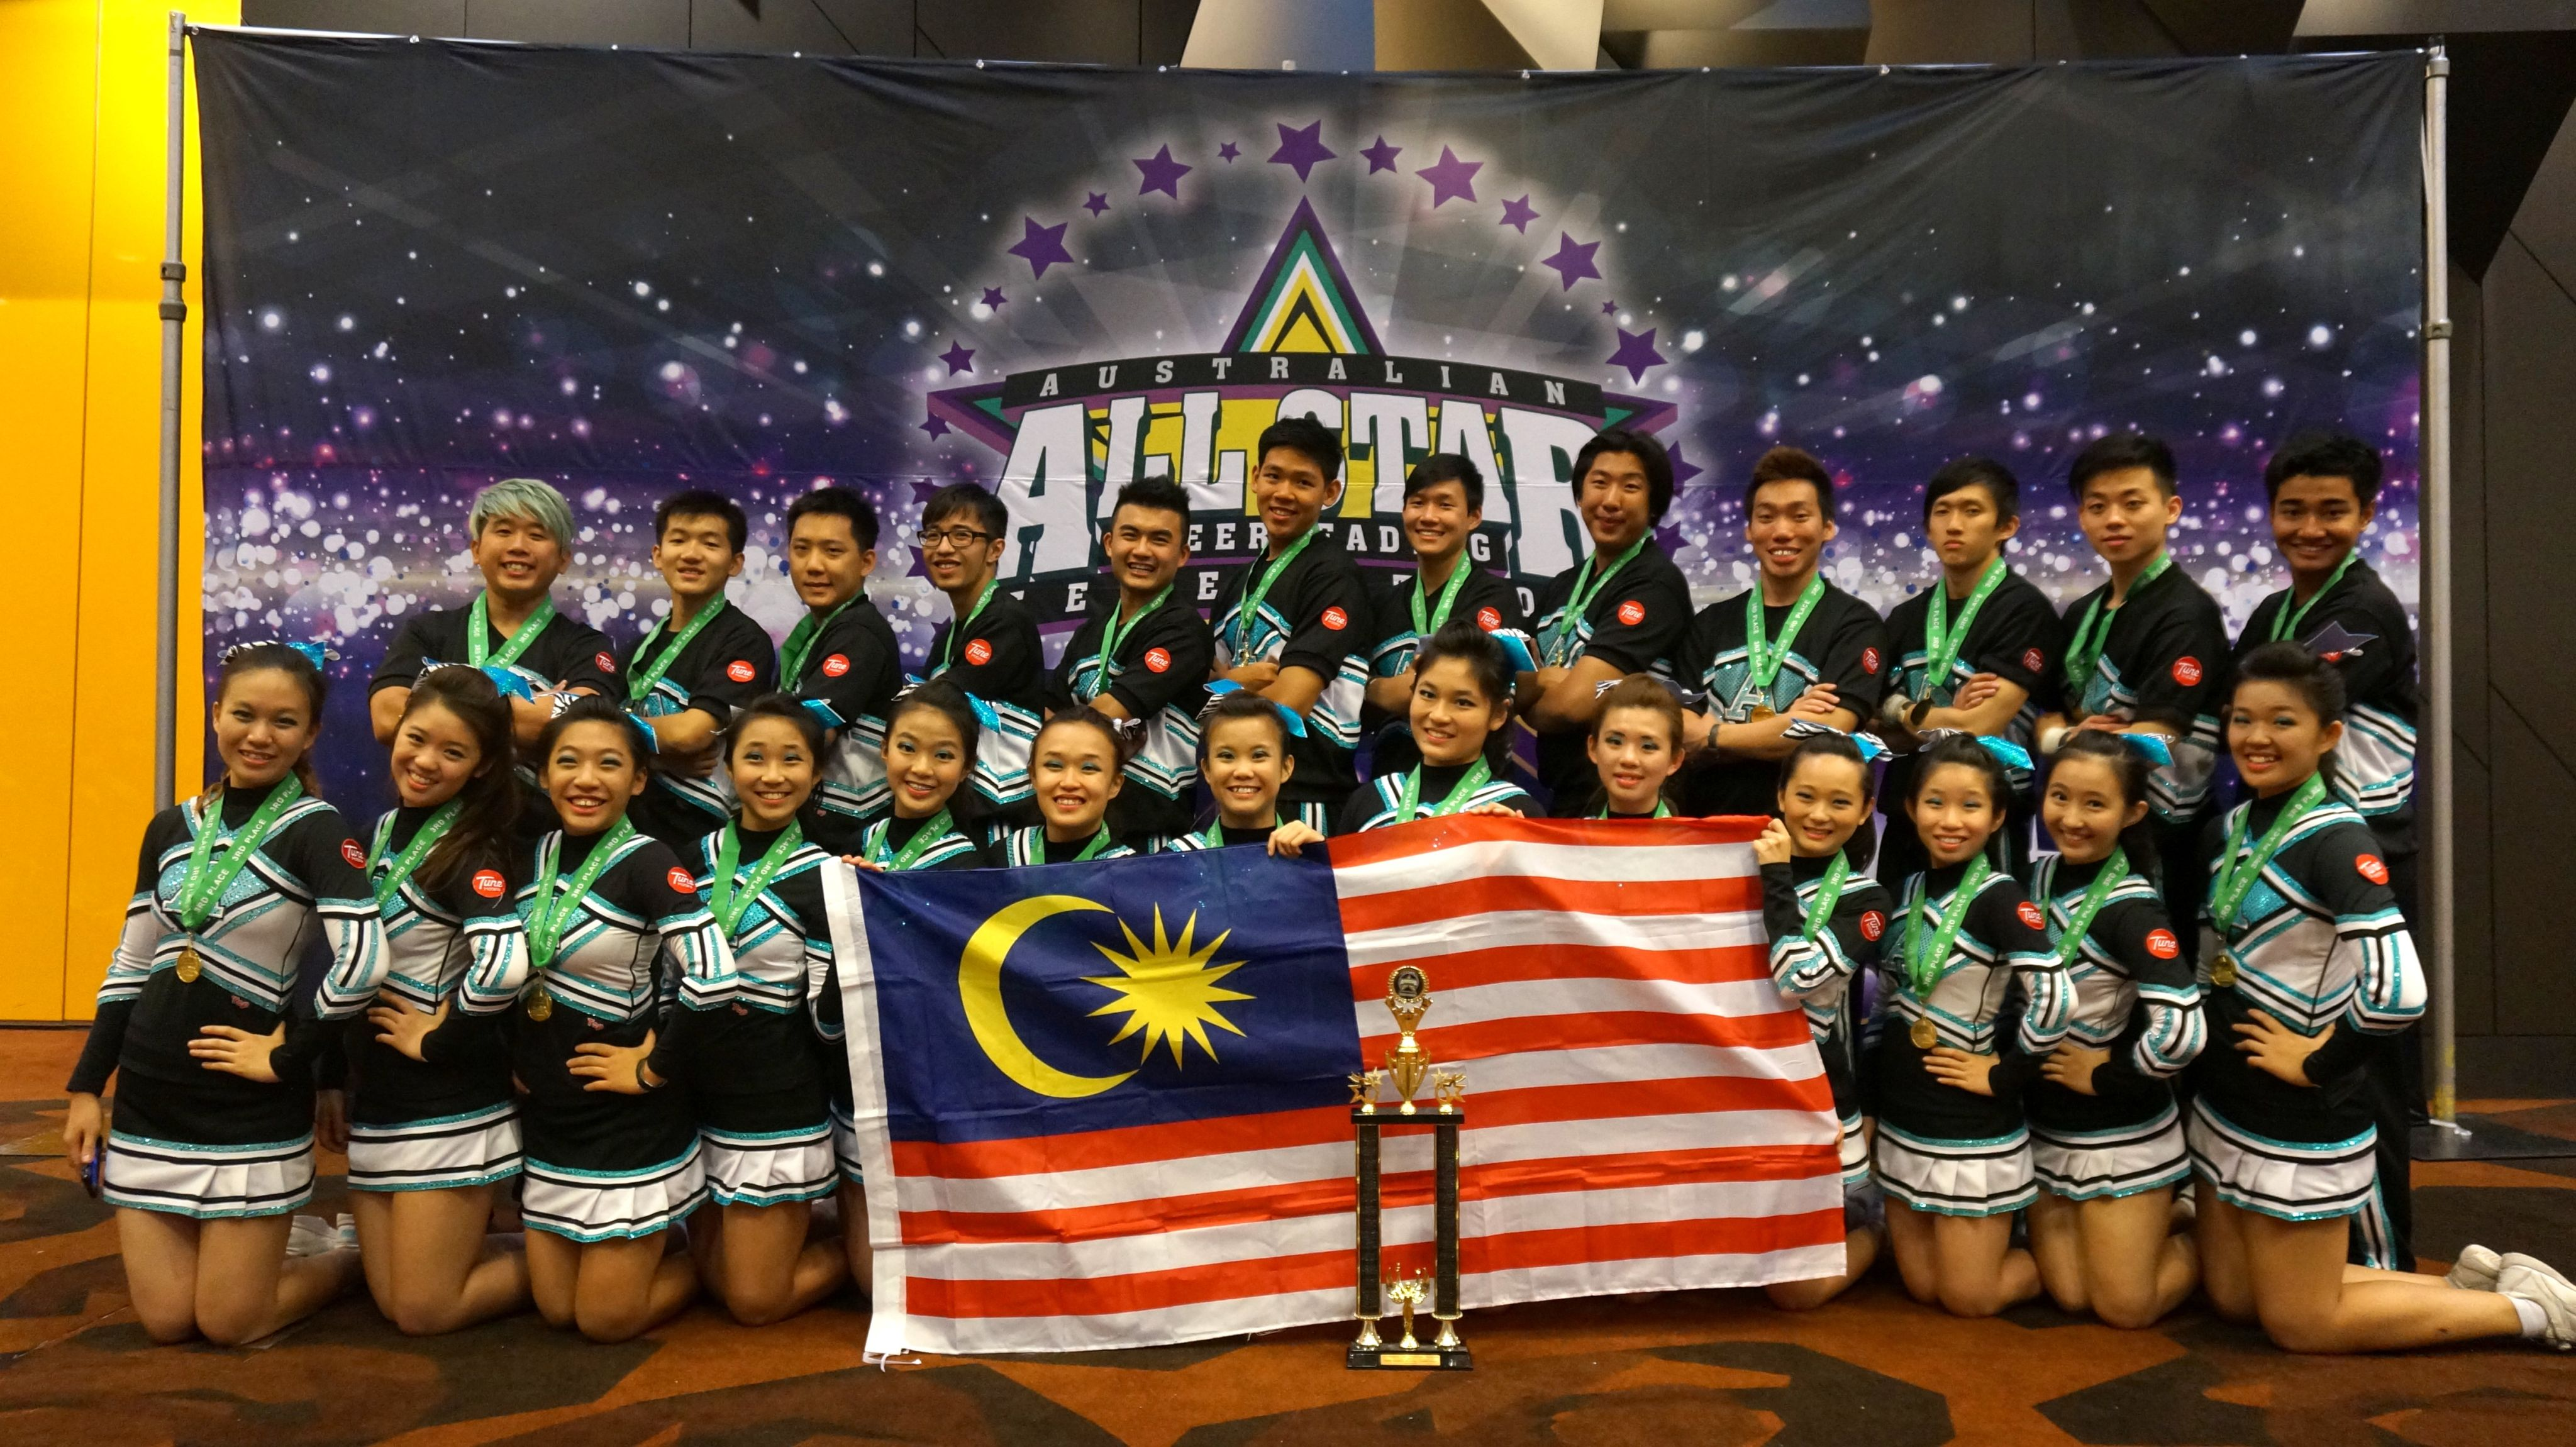 The Awesome All-Stars with their trophy at the Australian All-Stars Cheerleading Federation (AASCF) in Melbourne, Australia.